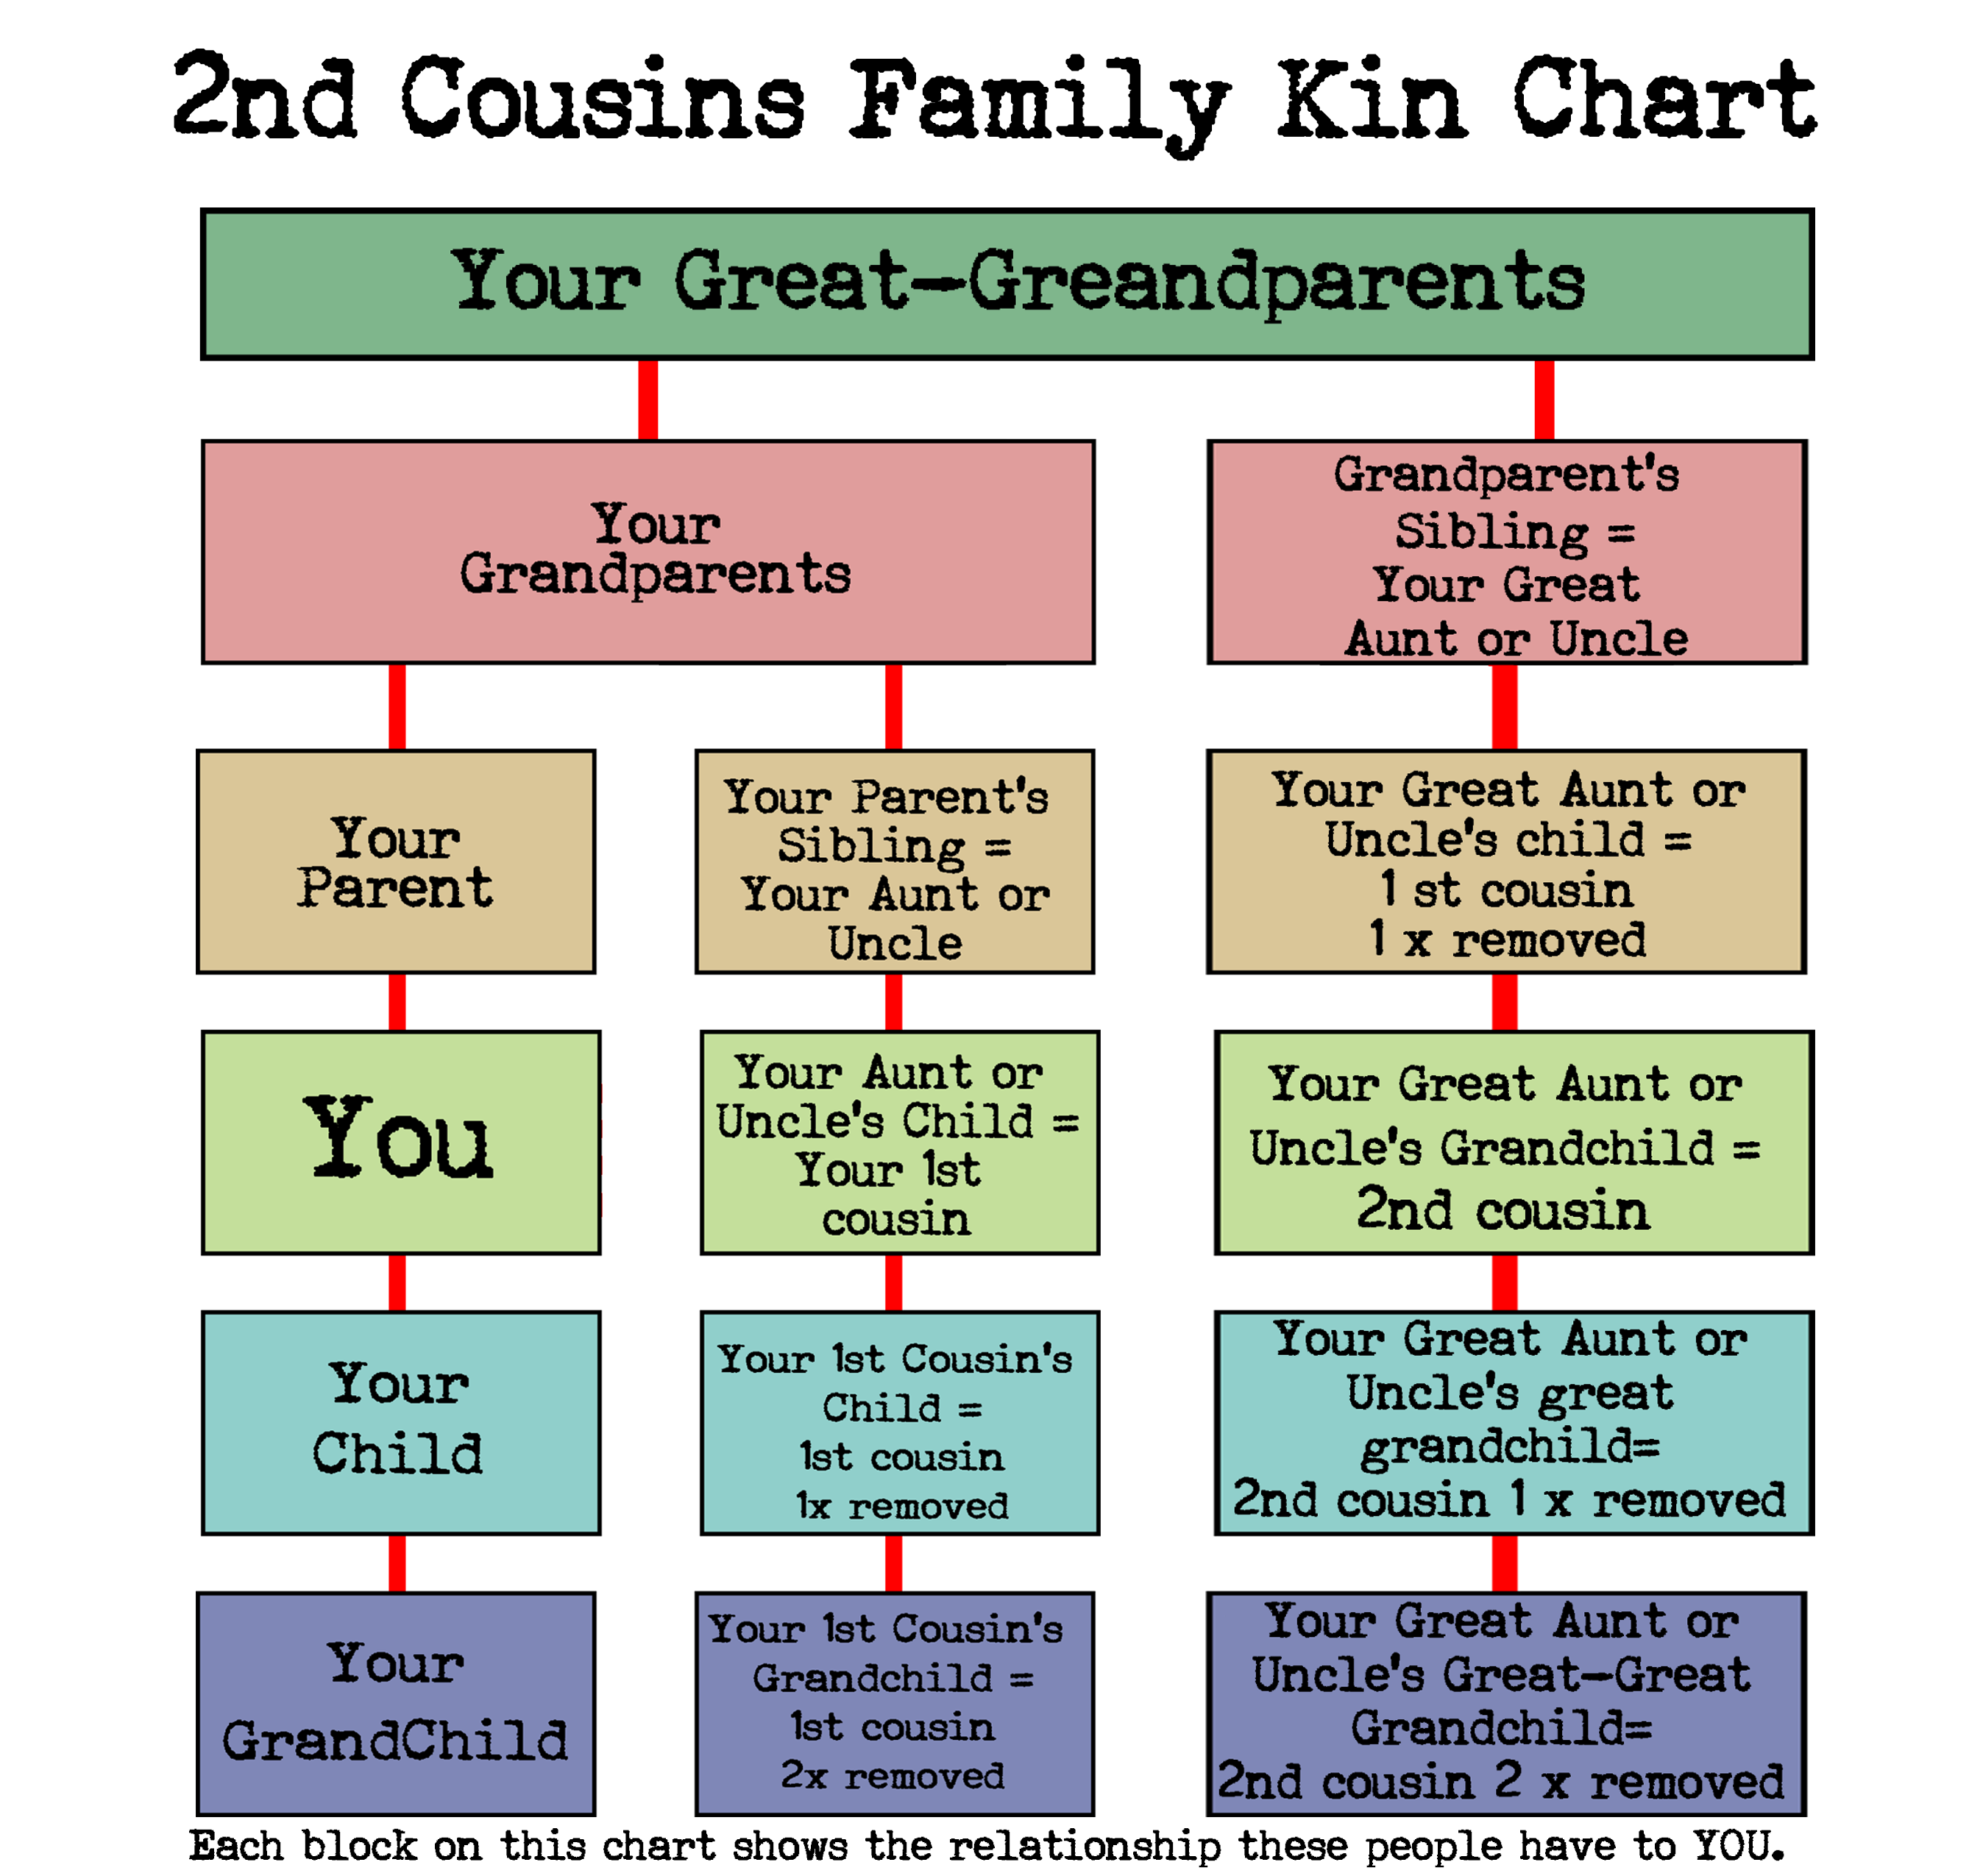 What Cousin Are They? -How To Understand Family